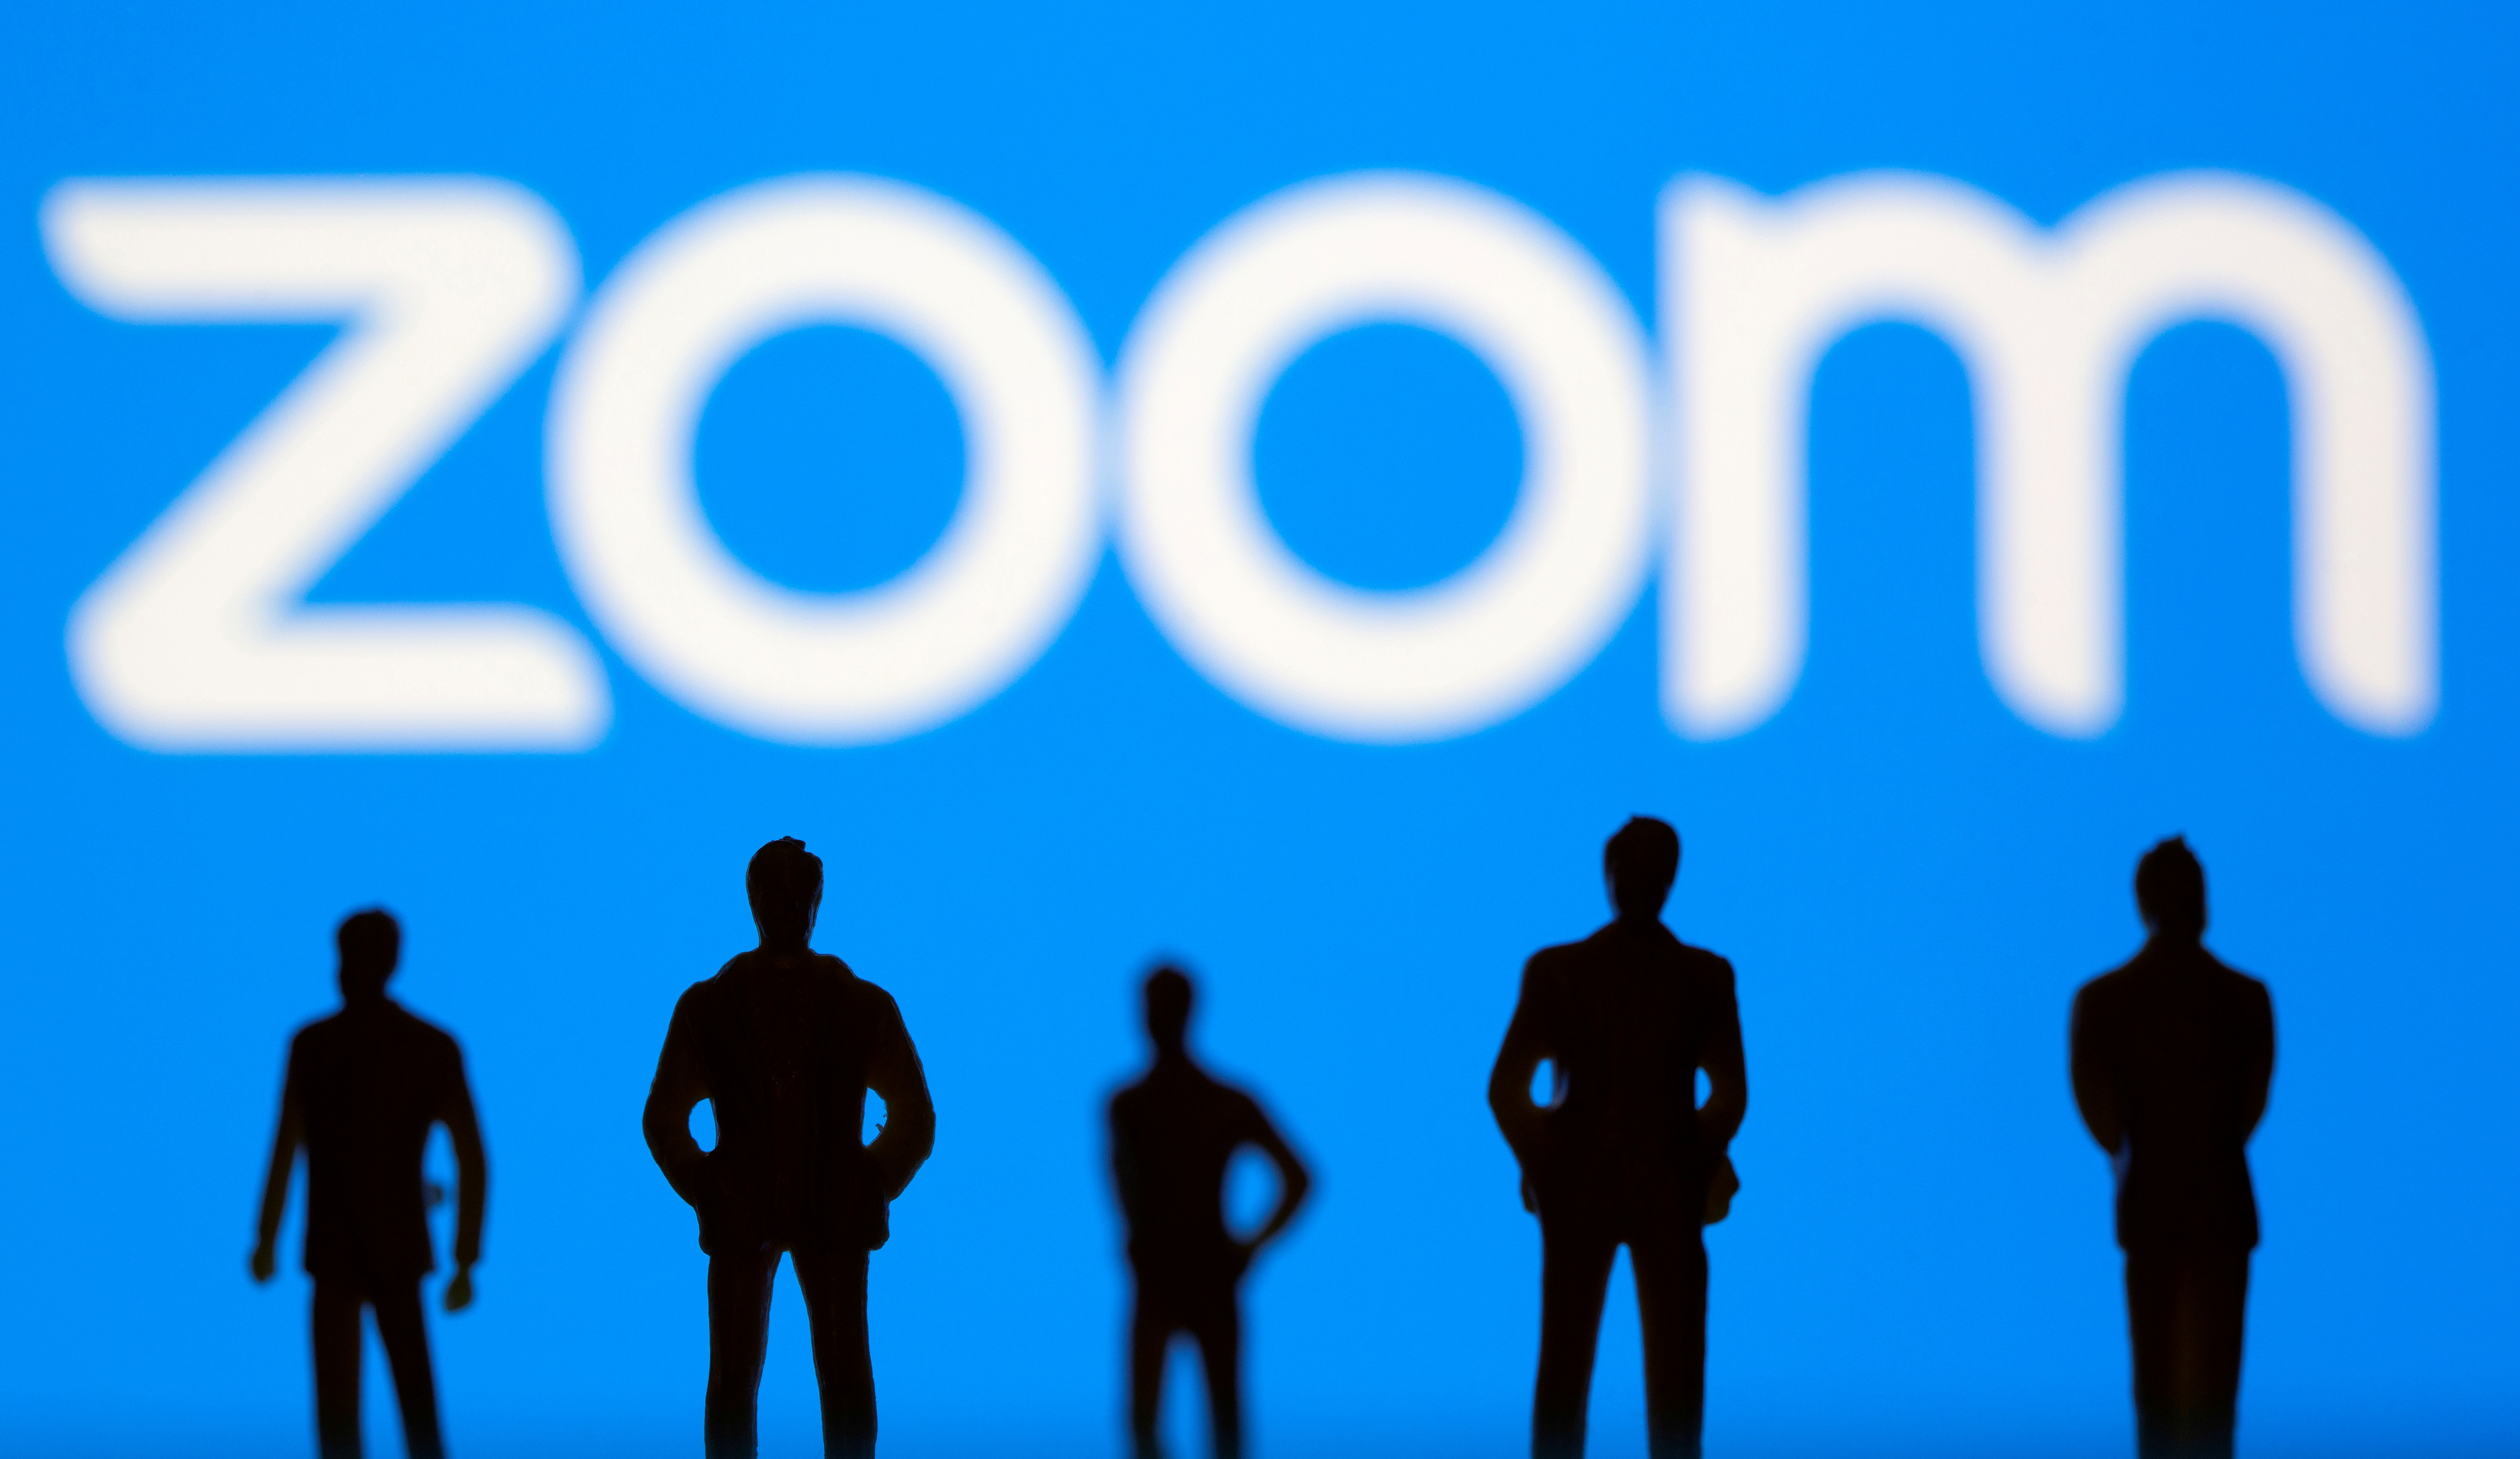 Small toy figures are seen in front of Zoom logo in this illustration picture taken March 15, 2021. REUTERS/Dado Ruvic/Illustration